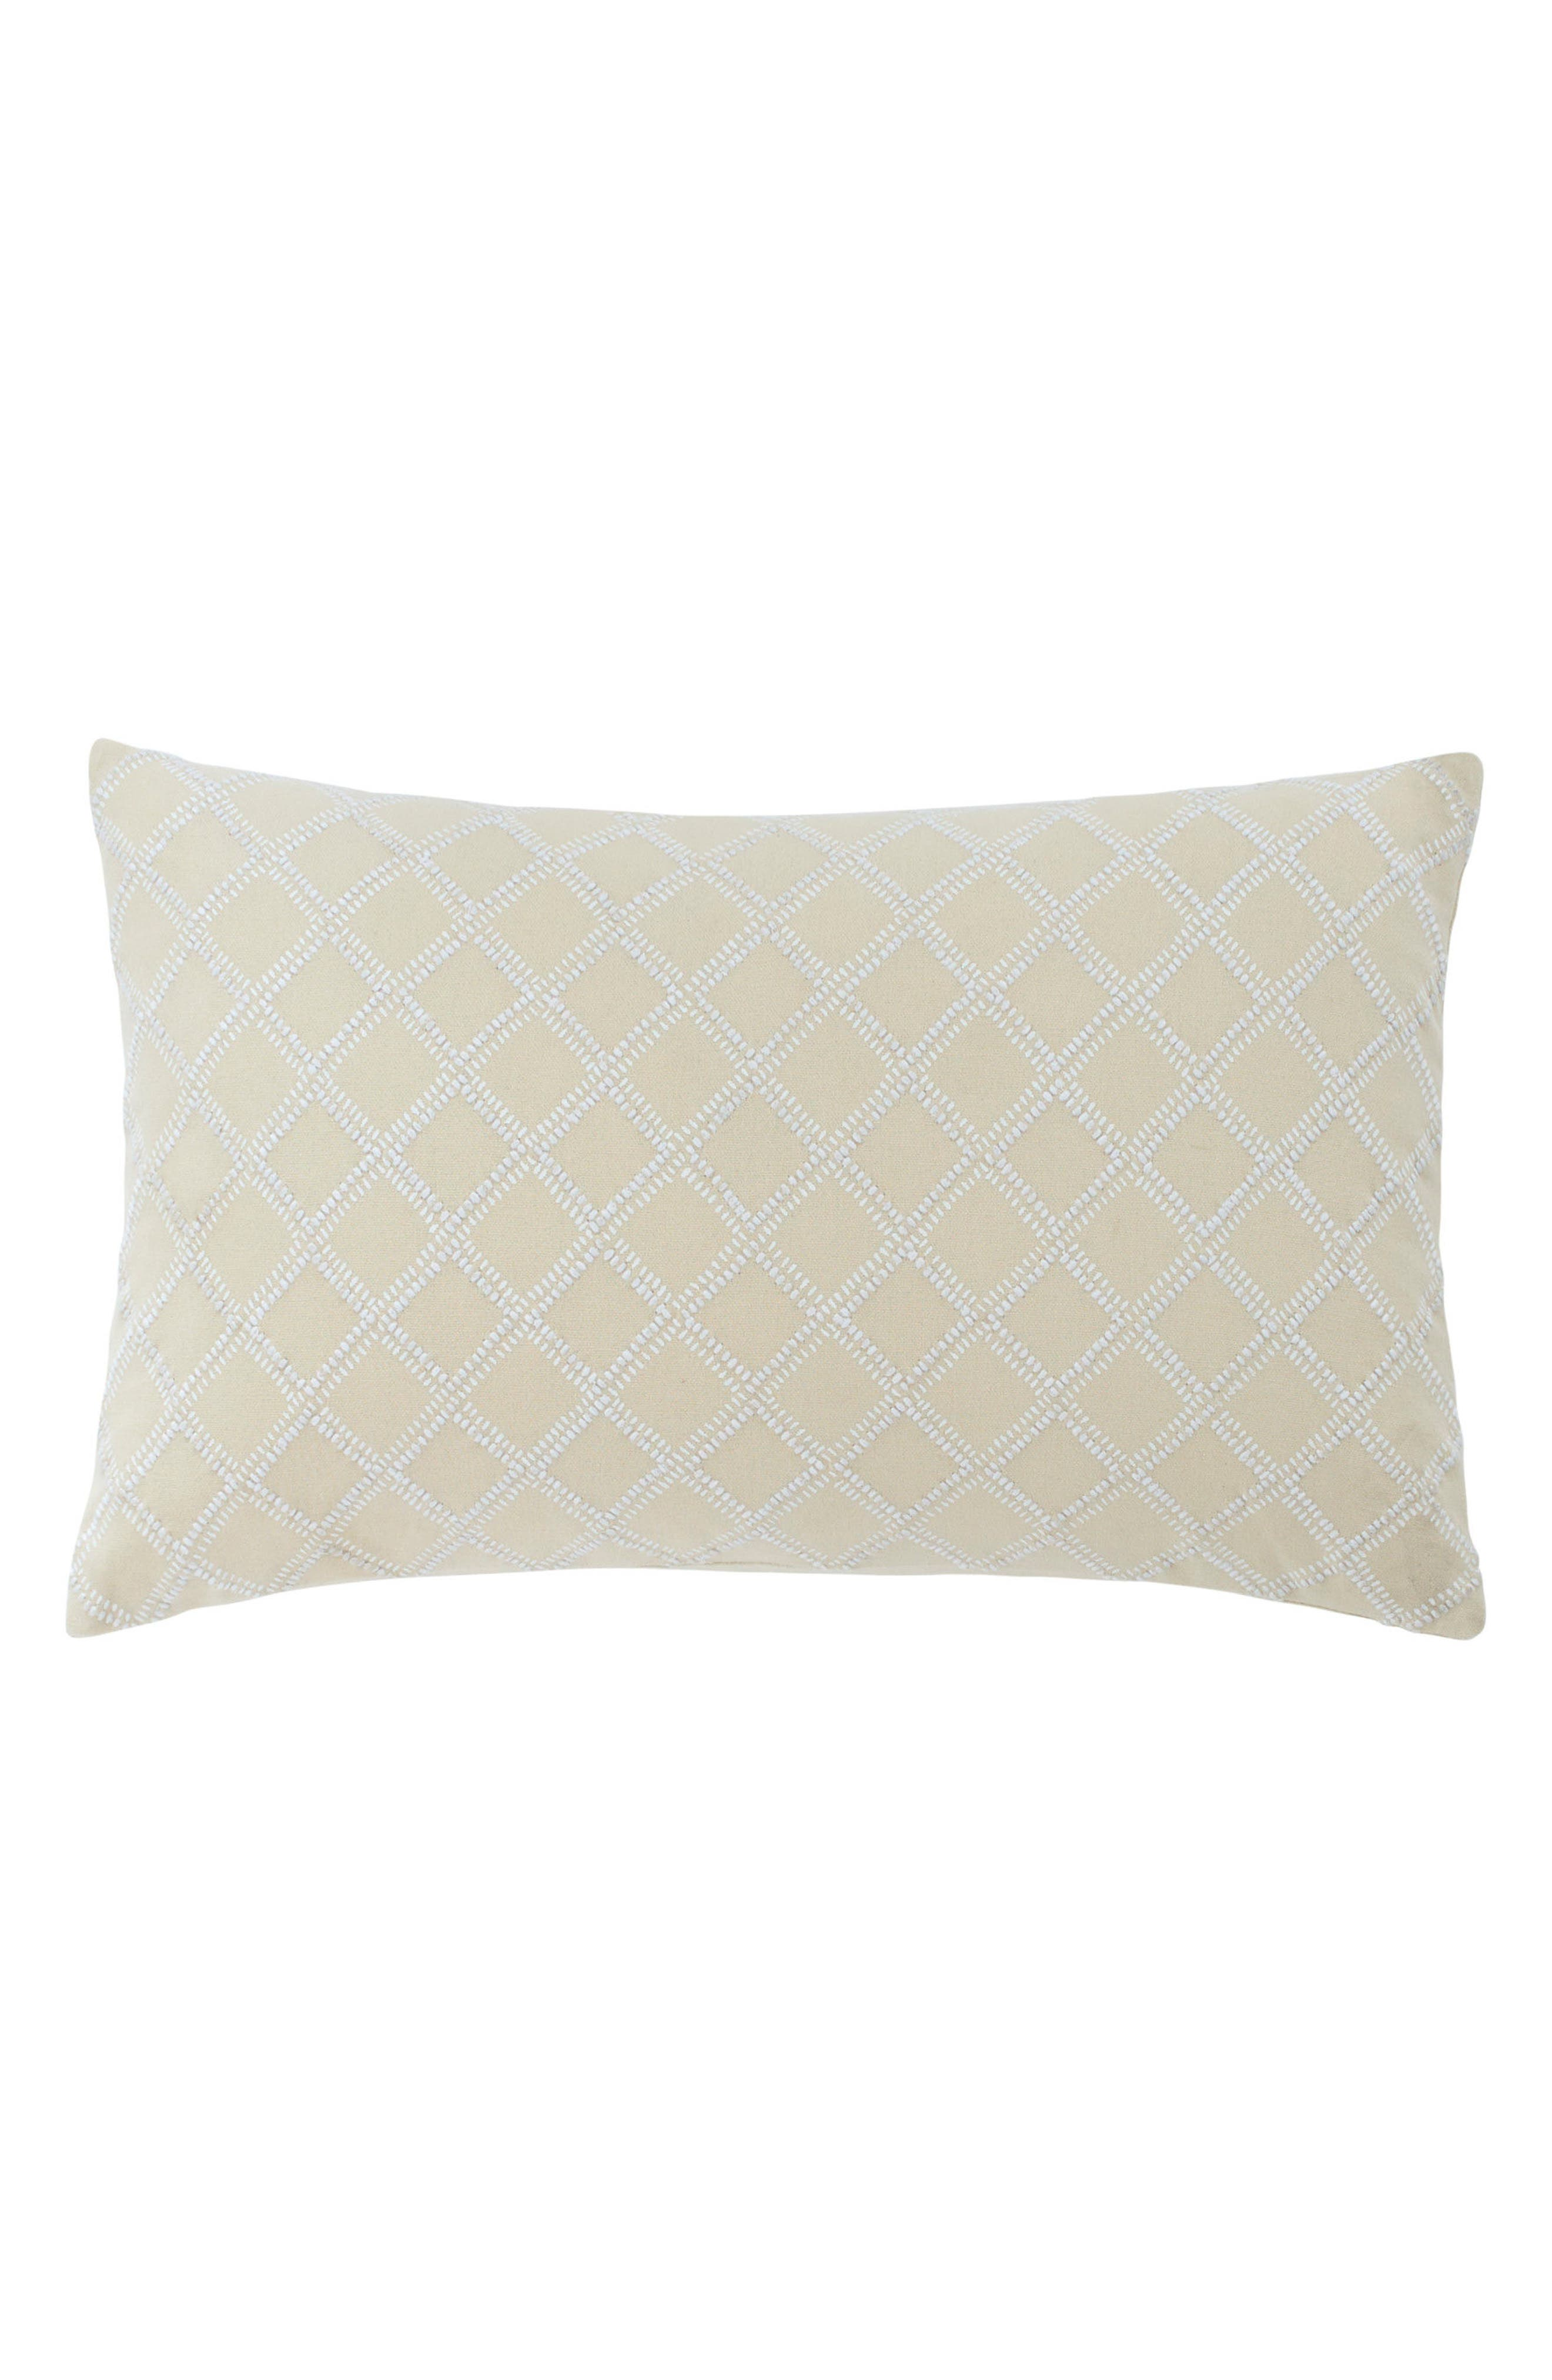 Southern Tie Southern Hospitality Trellis Accent Pillow